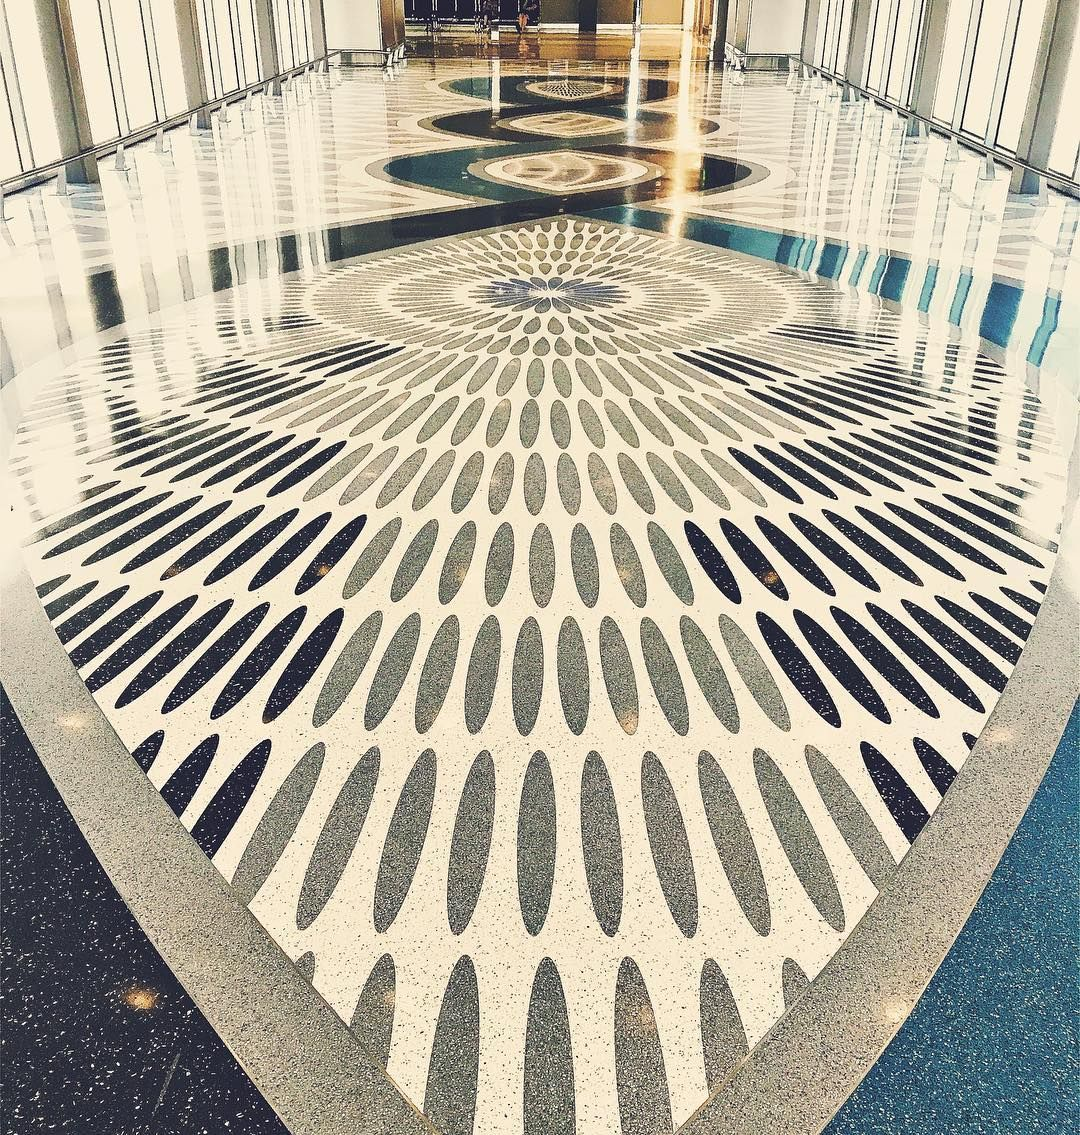 terrazzo floor design at phoenix sky harbor international